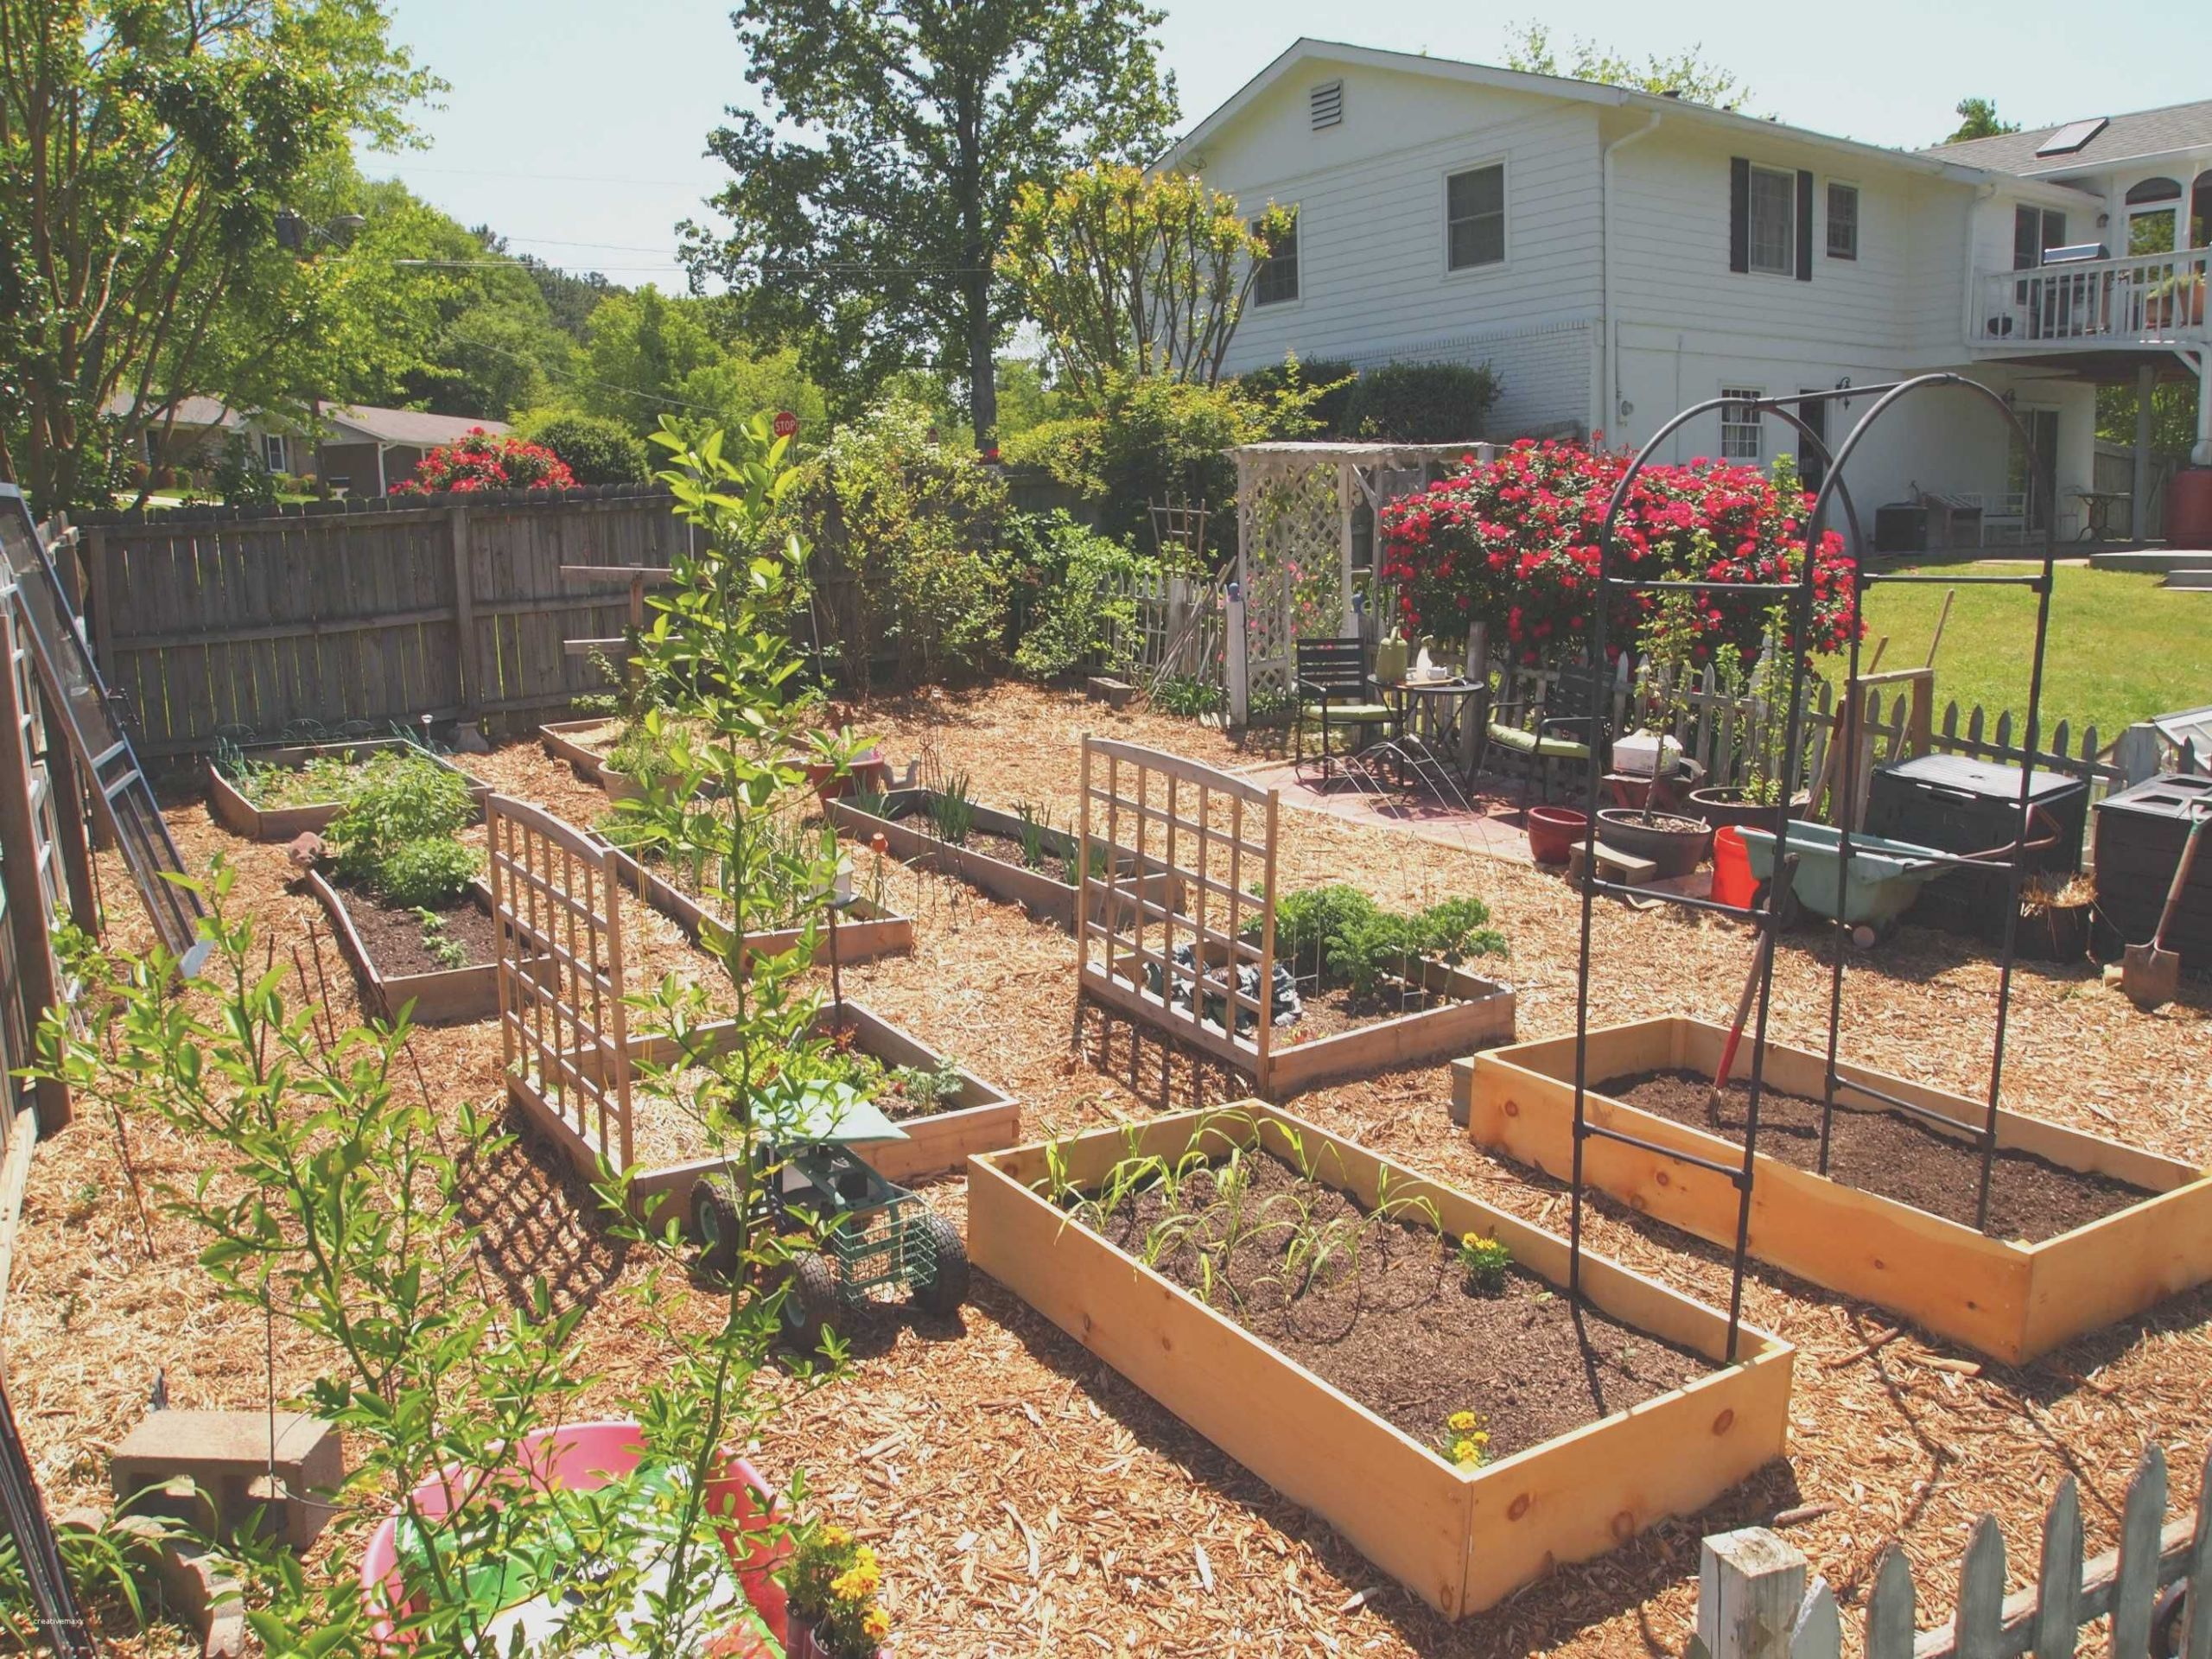 Beautiful Vegetable Gardening Ideas For Small Spaces | Garden ..